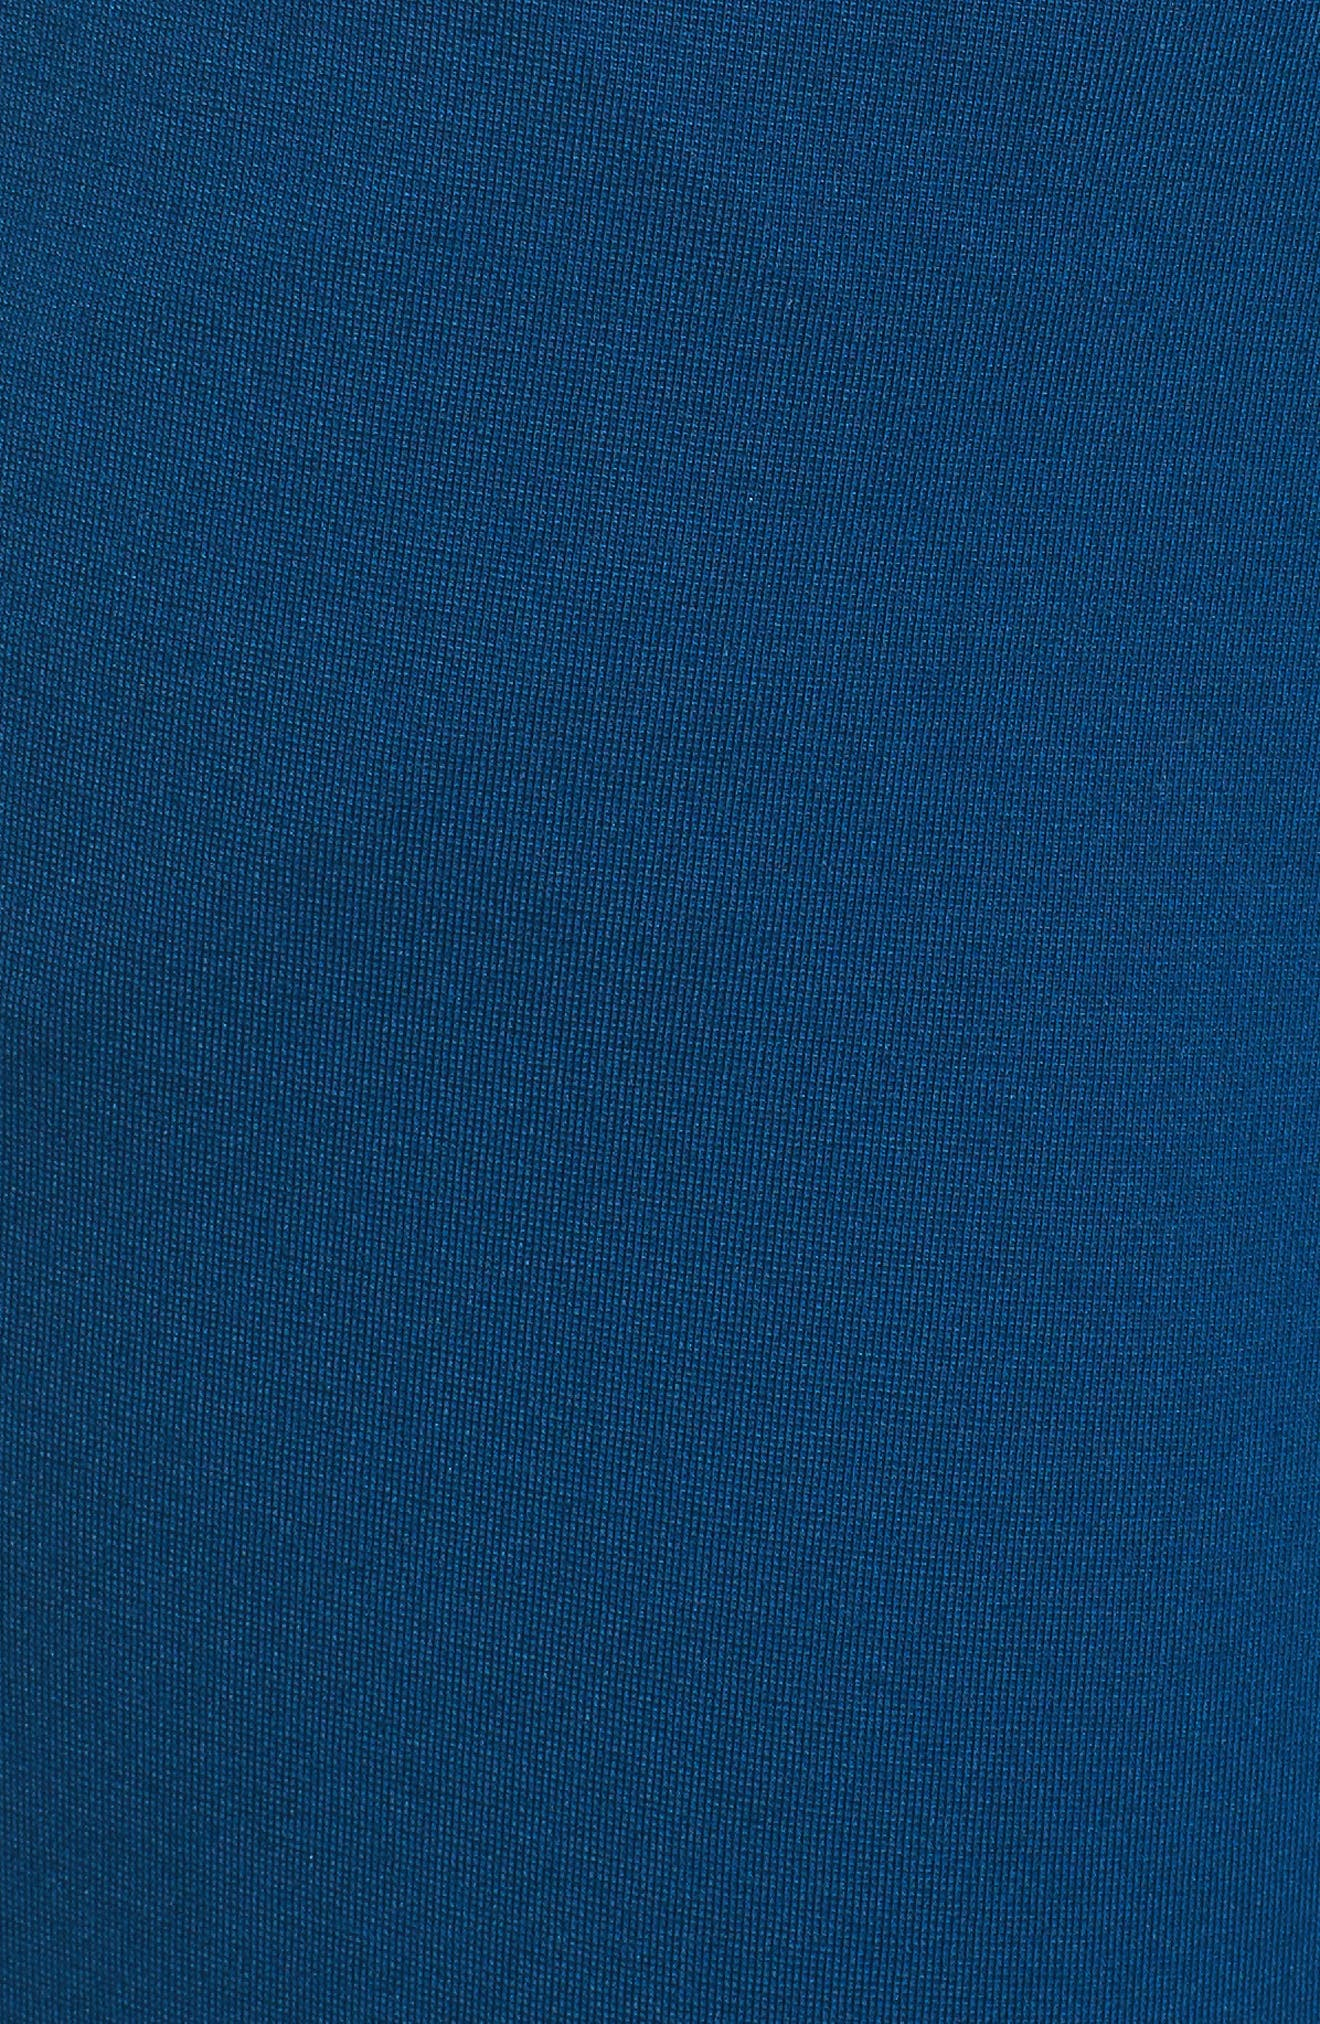 Jane Brown Trousers,                             Alternate thumbnail 5, color,                             NEW NAVY